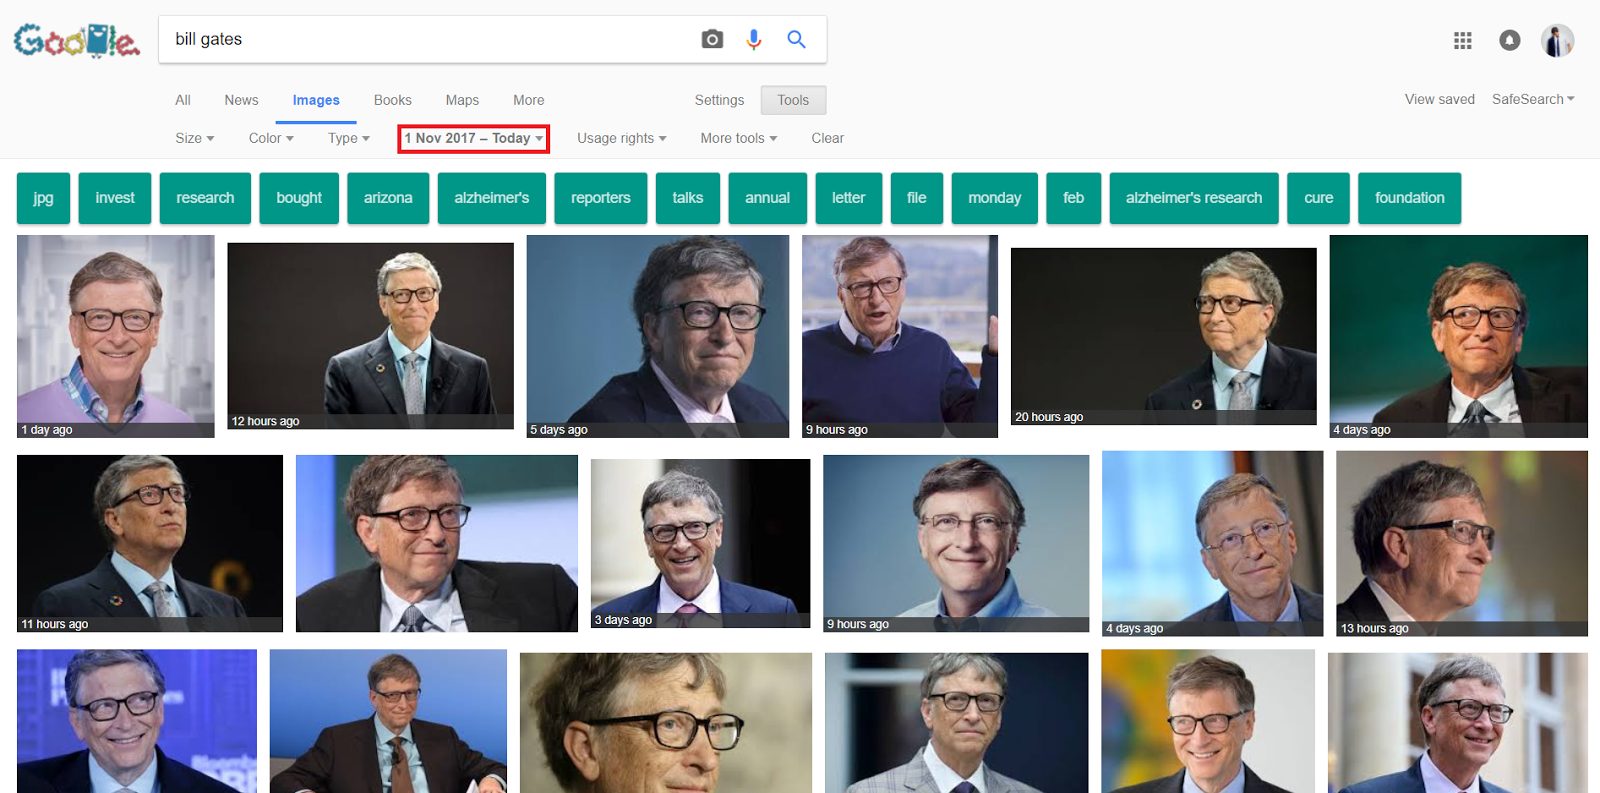 Top Bill Gates images in 2017 by Google Image Advanced Search